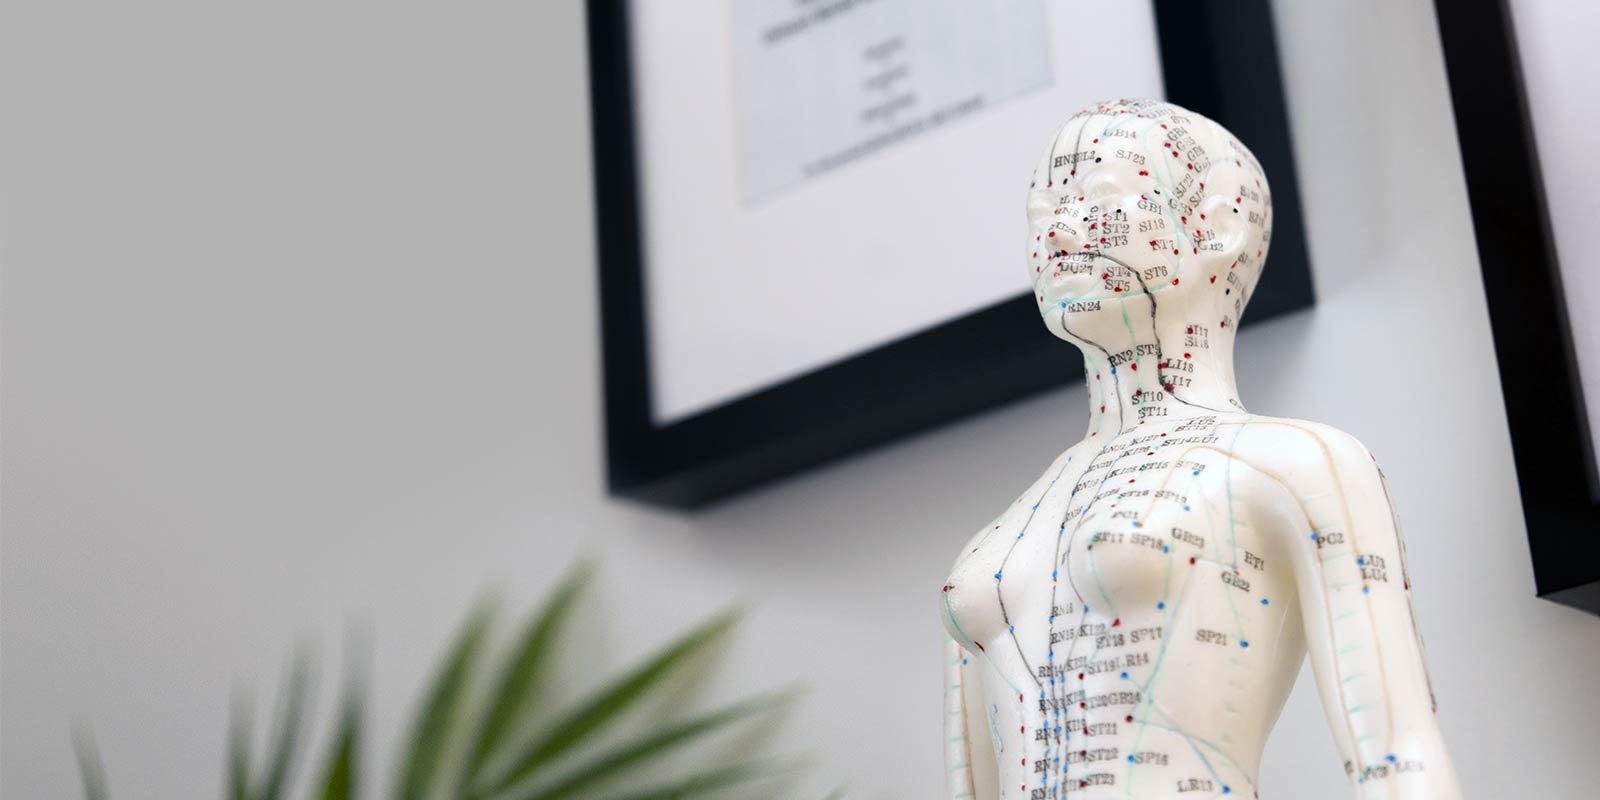 Sellick Acupuncture and Traditional Chinese Medicine